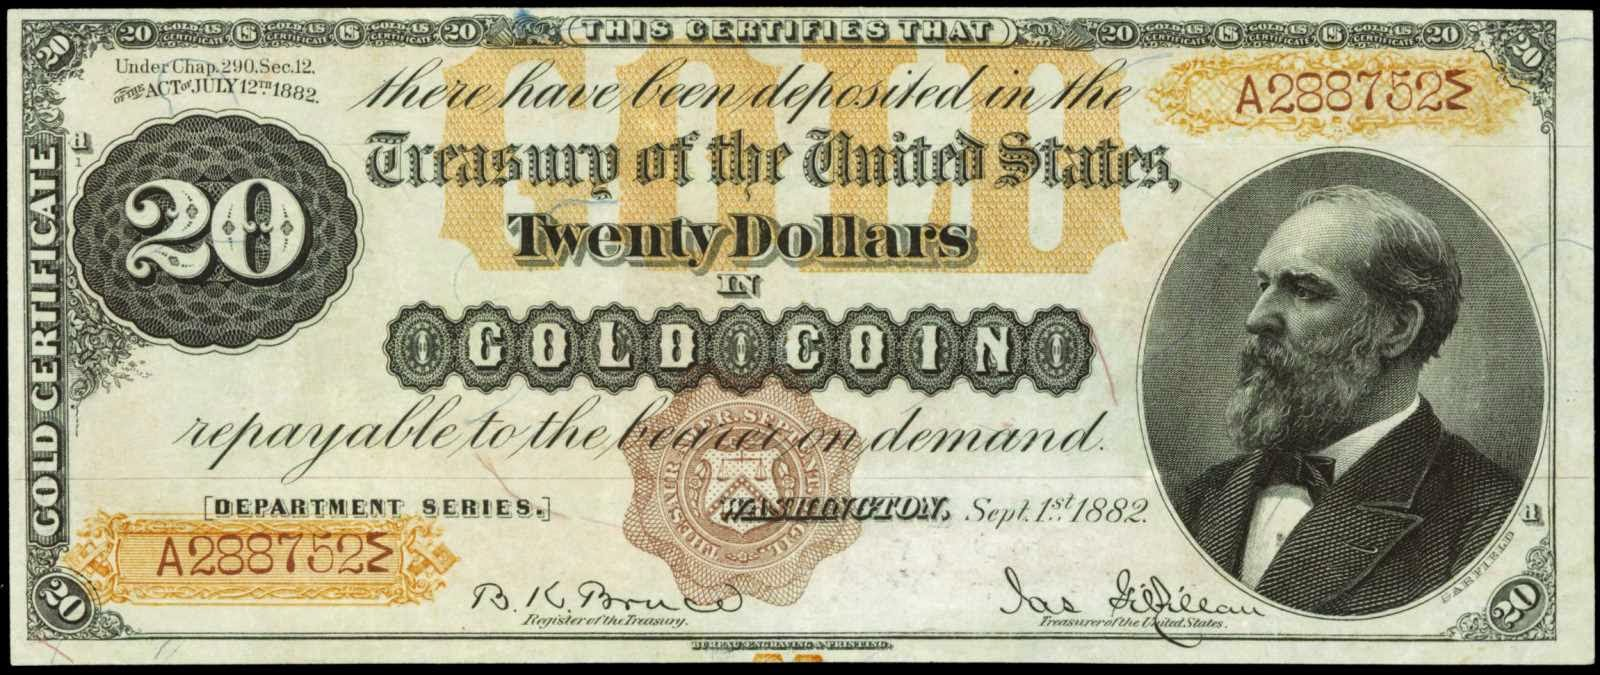 1882 20 Dollar Gold Certificate, James Garfield